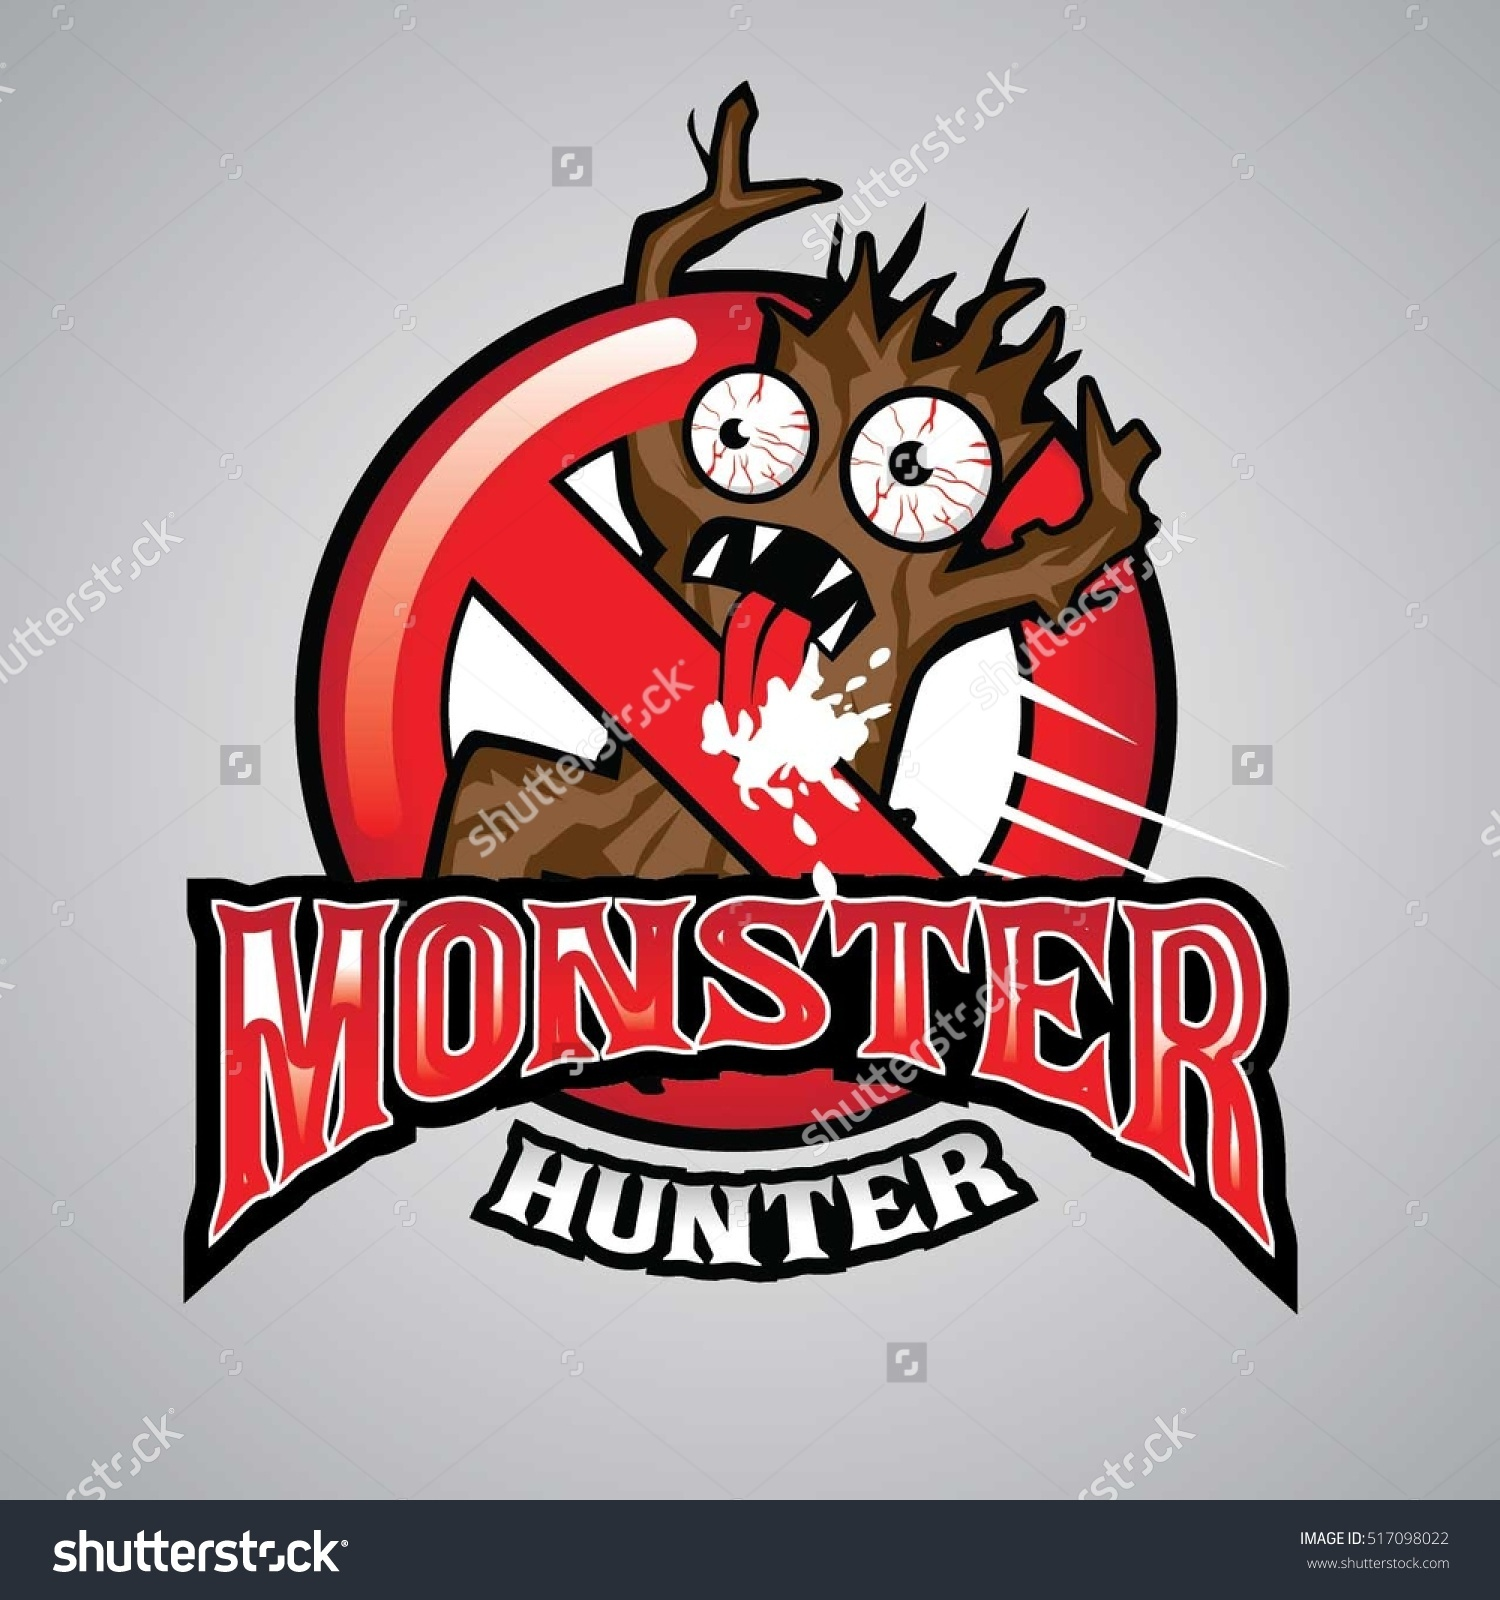 Monster Hunter clipart #2, Download drawings